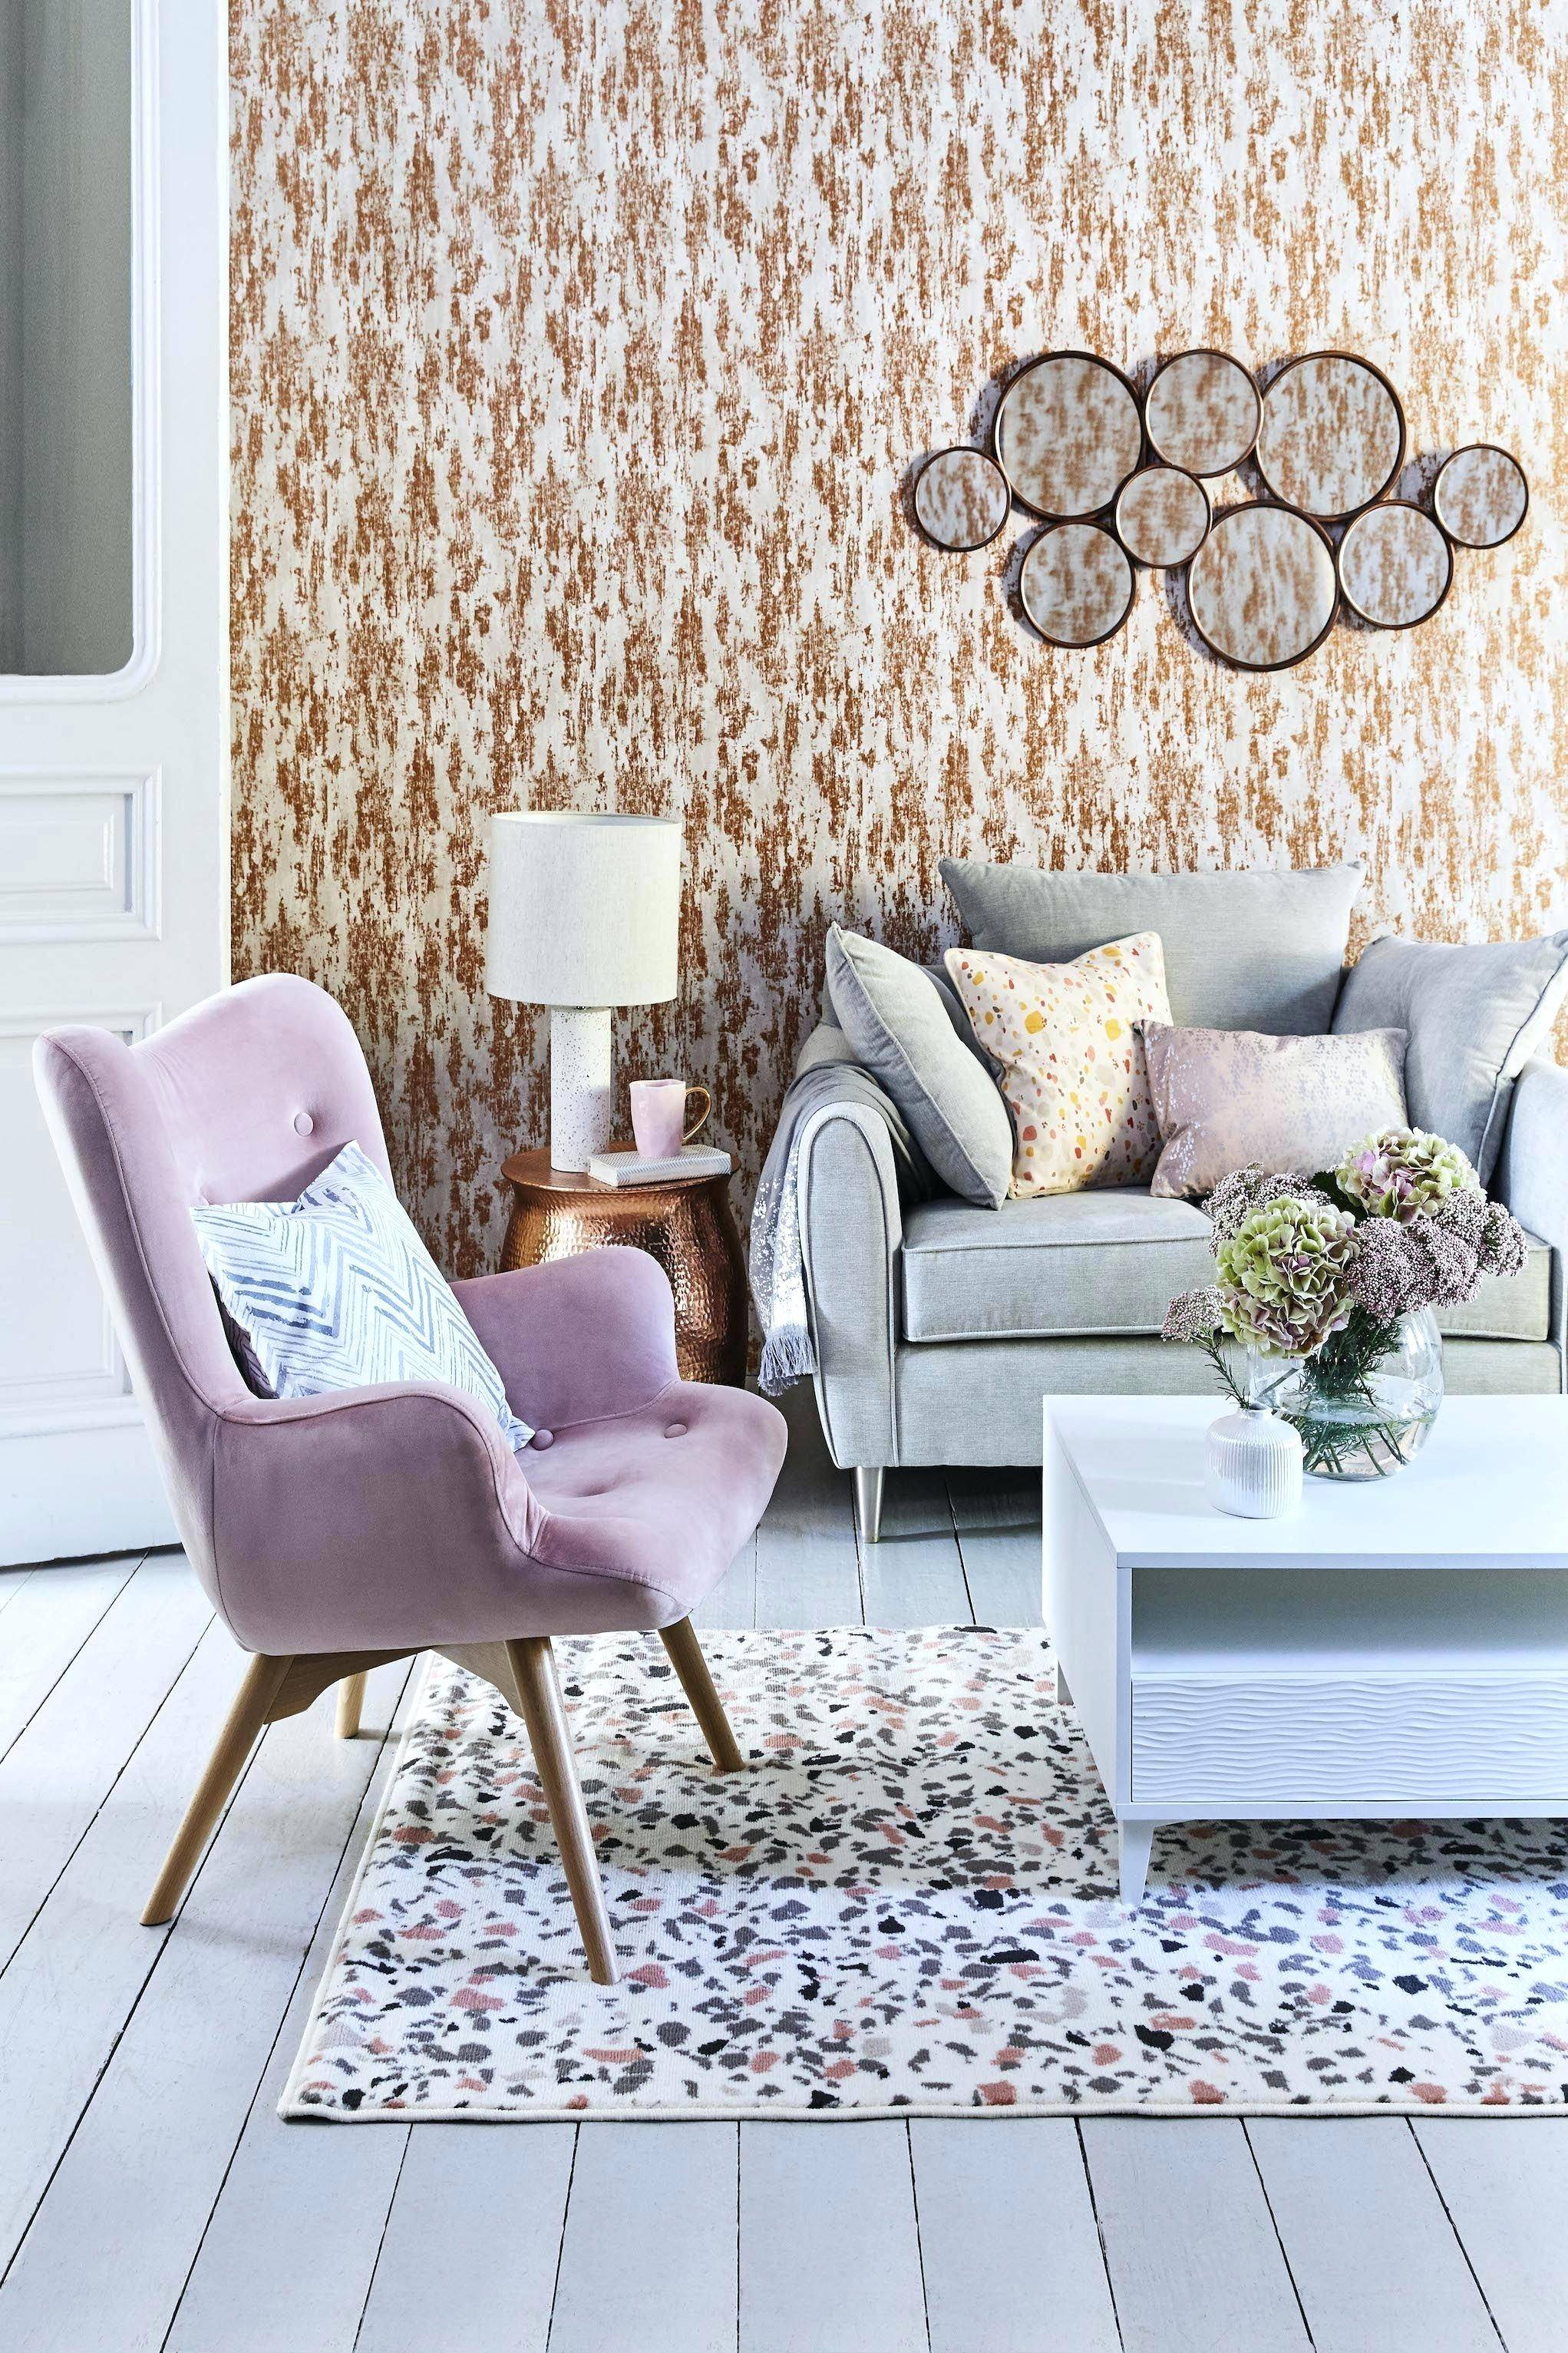 future interior design trends 2020 2019 2018 living room top home and for spring summer improvement alluring soft world l